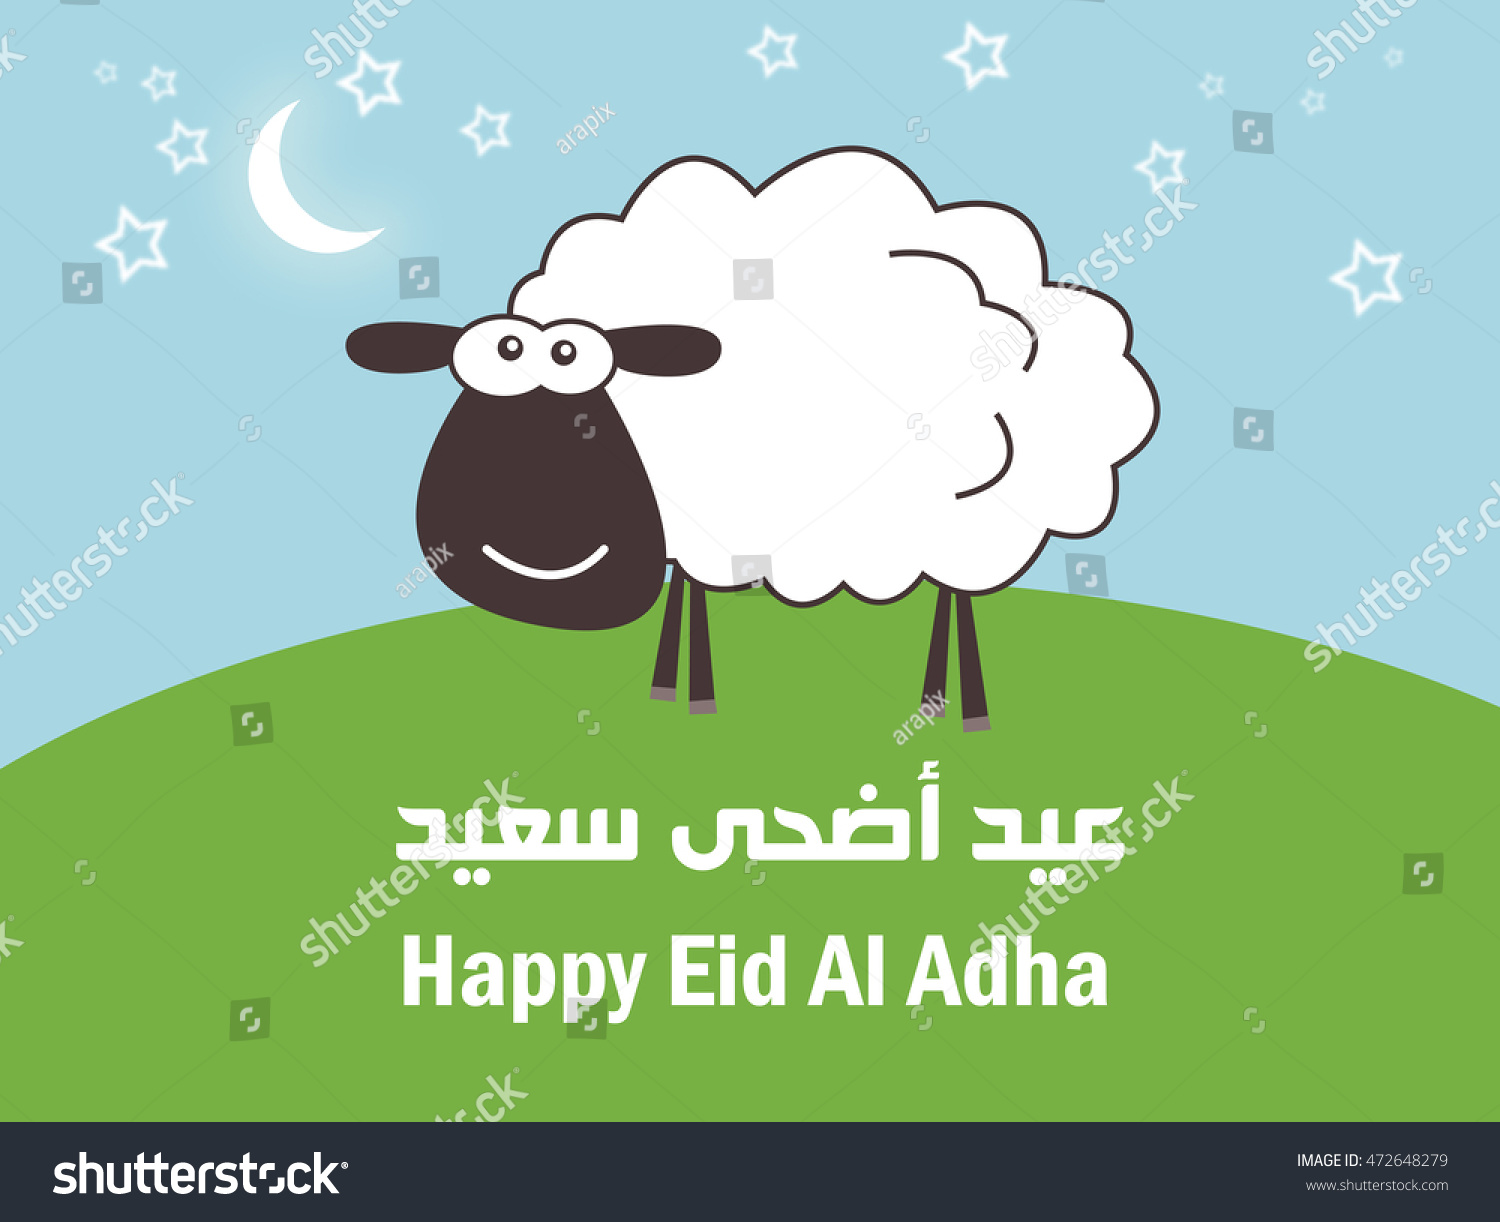 'Eid Adha Saeed Translation Happy Sacrifice Feast In Arabic and English Text Vector- Eps10